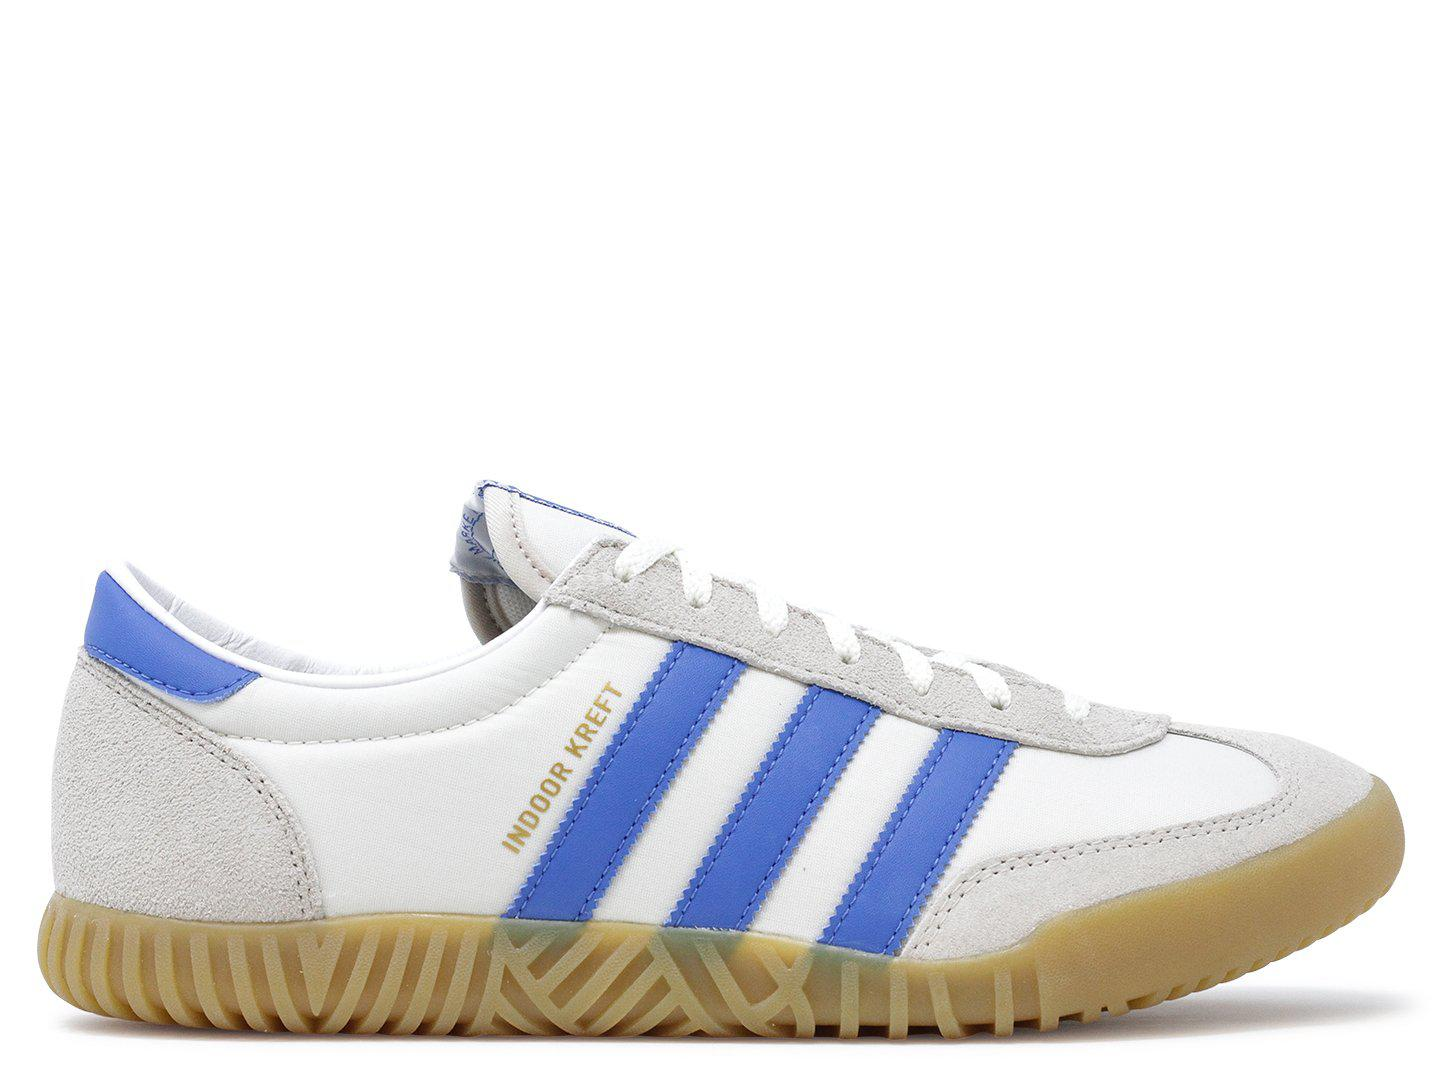 Indoor Kreft Spezial Leather-trimmed Shell And Suede Sneakers adidas Originals mwDhuc